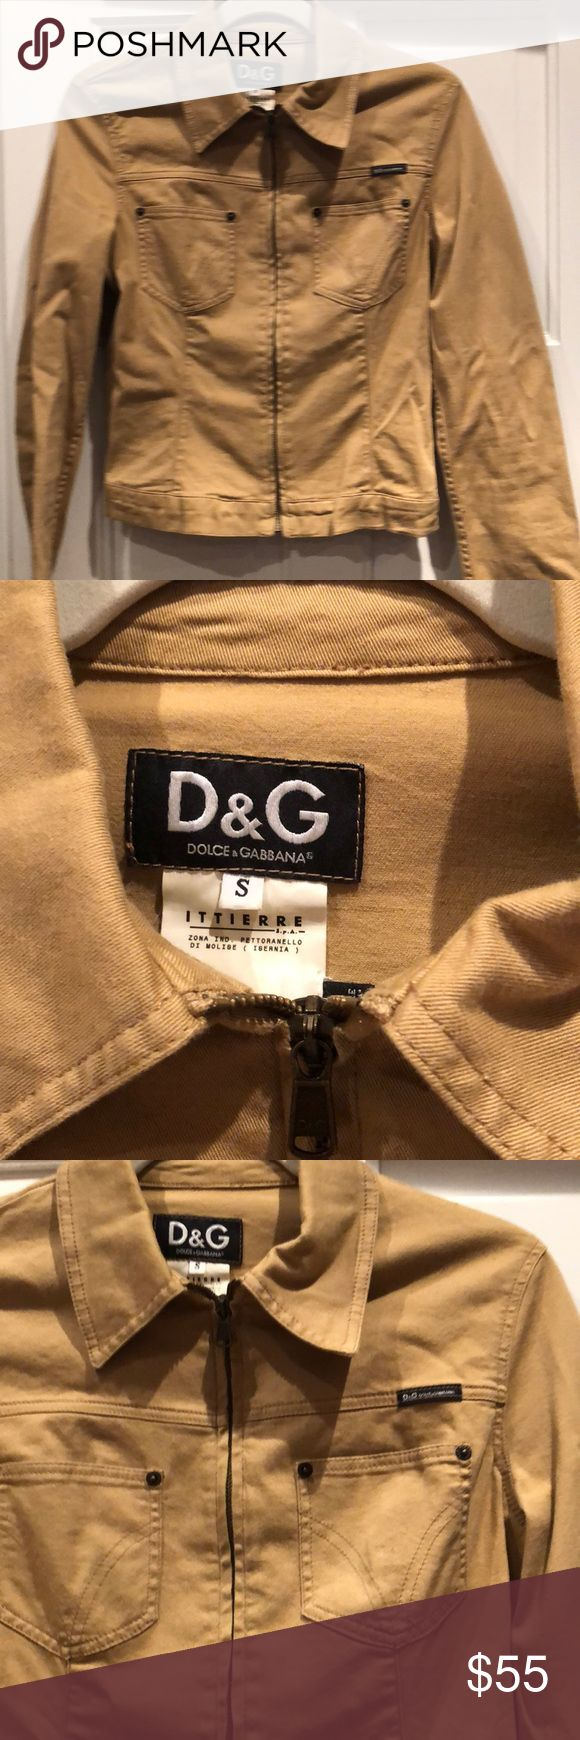 Tan D&G Jena jacket Very cute and nice fit. Only used a